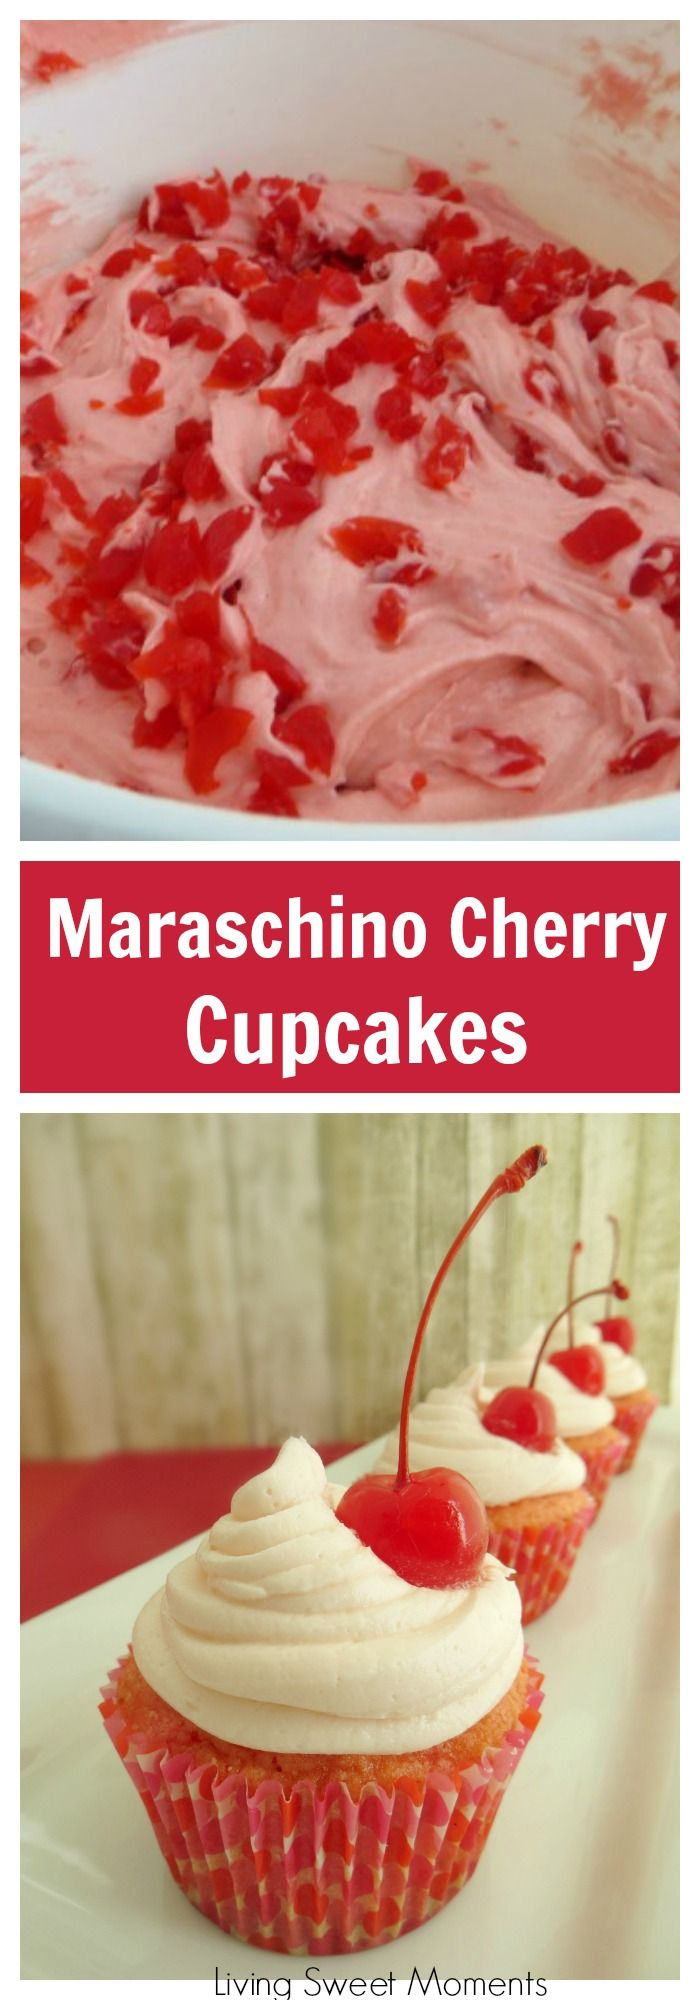 Maraschino Cherry Cupcakes - Delicious cupcakes with incredible cherry flavor. Easy to make and definitely a crowd pleaser. Perfect for Valentine's Day! More delicious cupcake recipes at livingsweemtoments.com  via @Livingsmoments